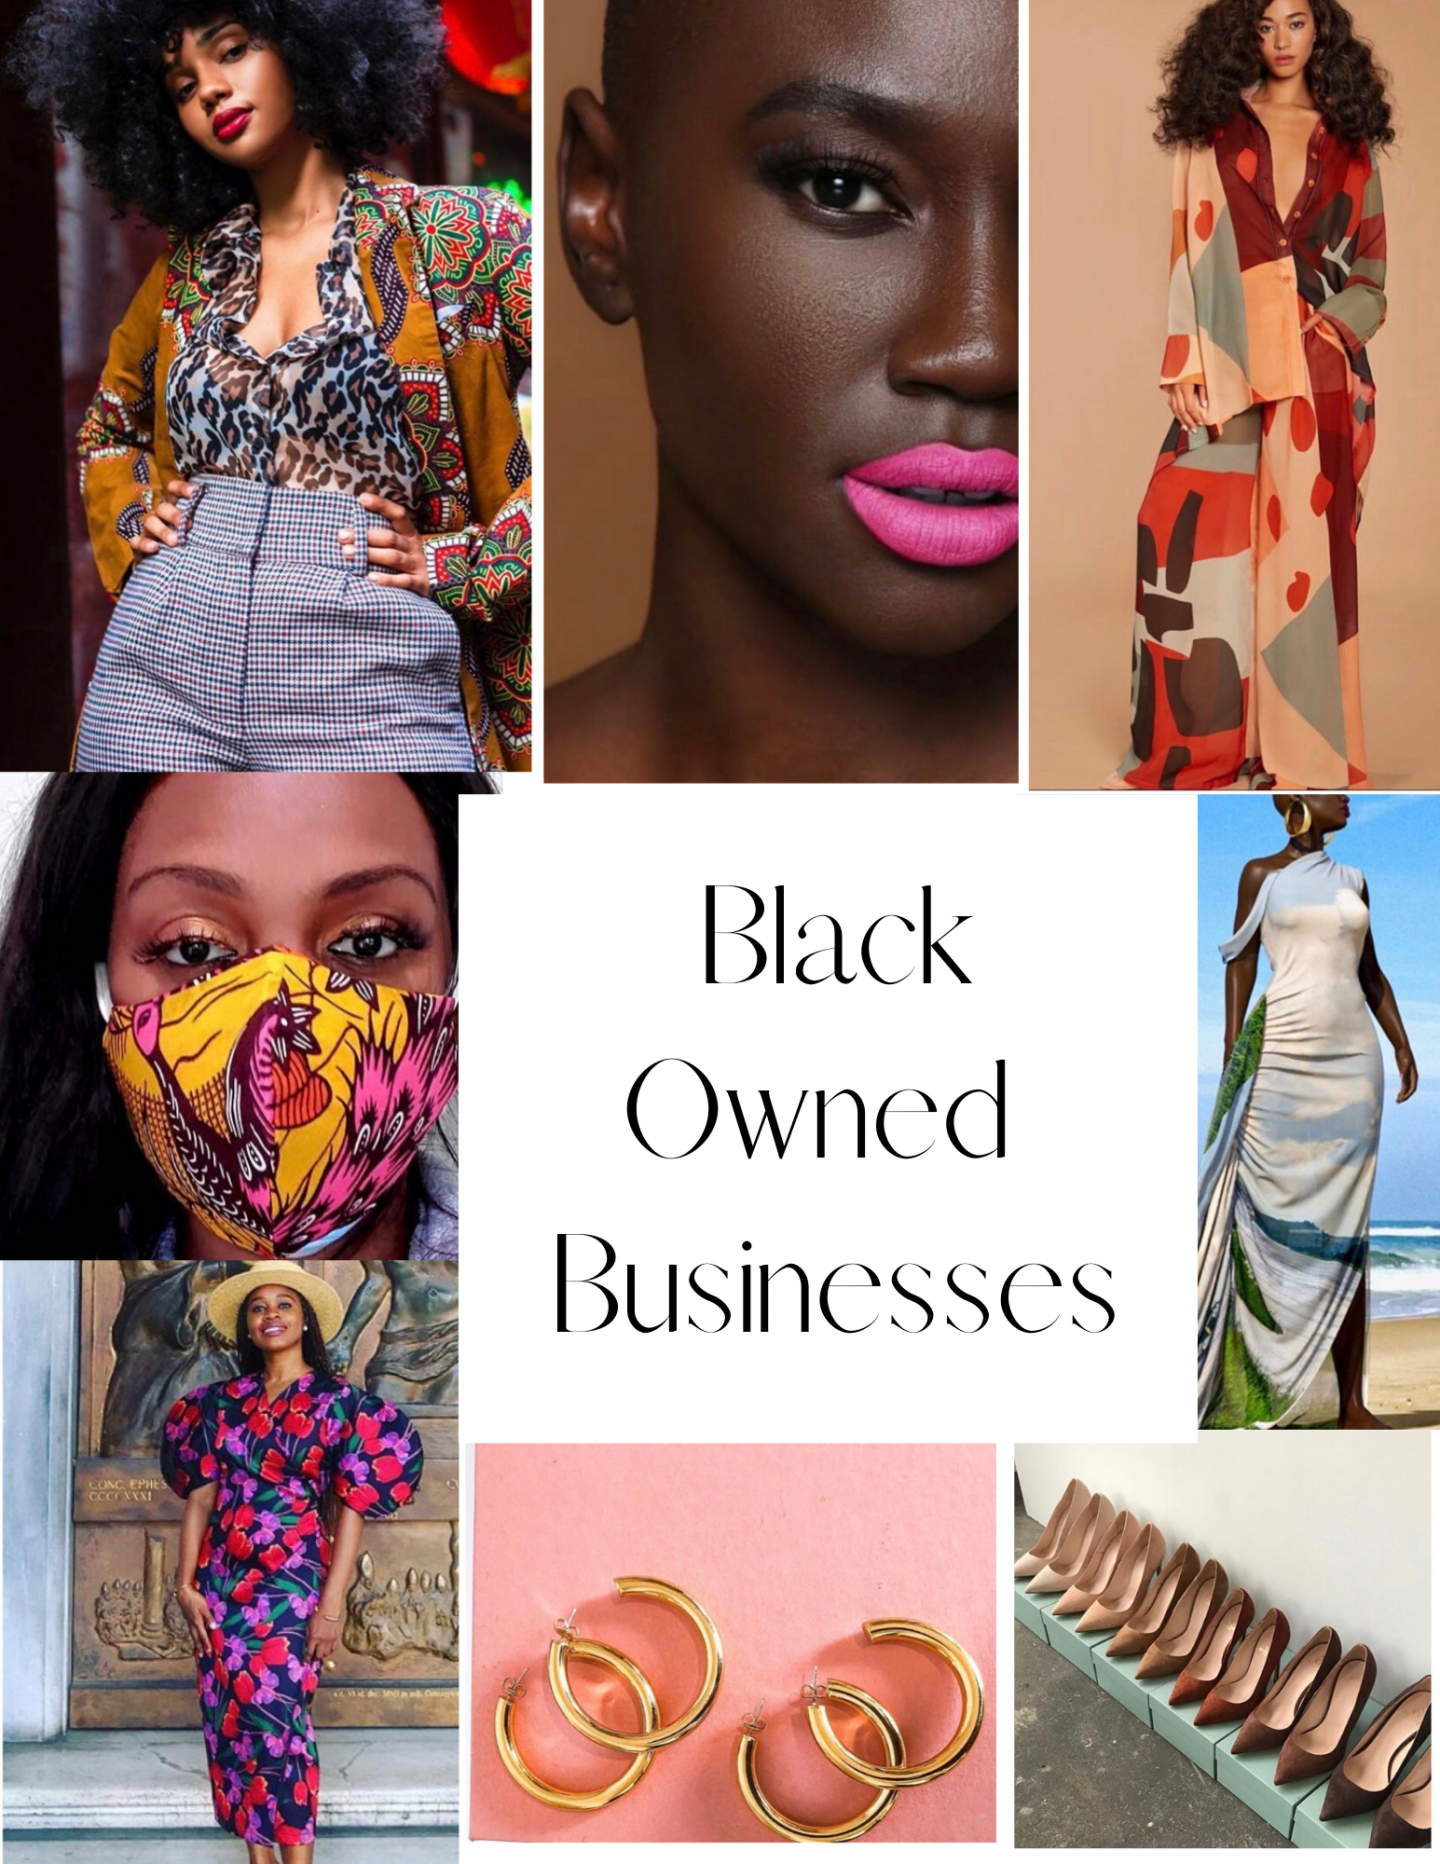 stella-adewunmi-of-jadore-fashion-blog-shares-female-black-owned-fashion-business-to-shop